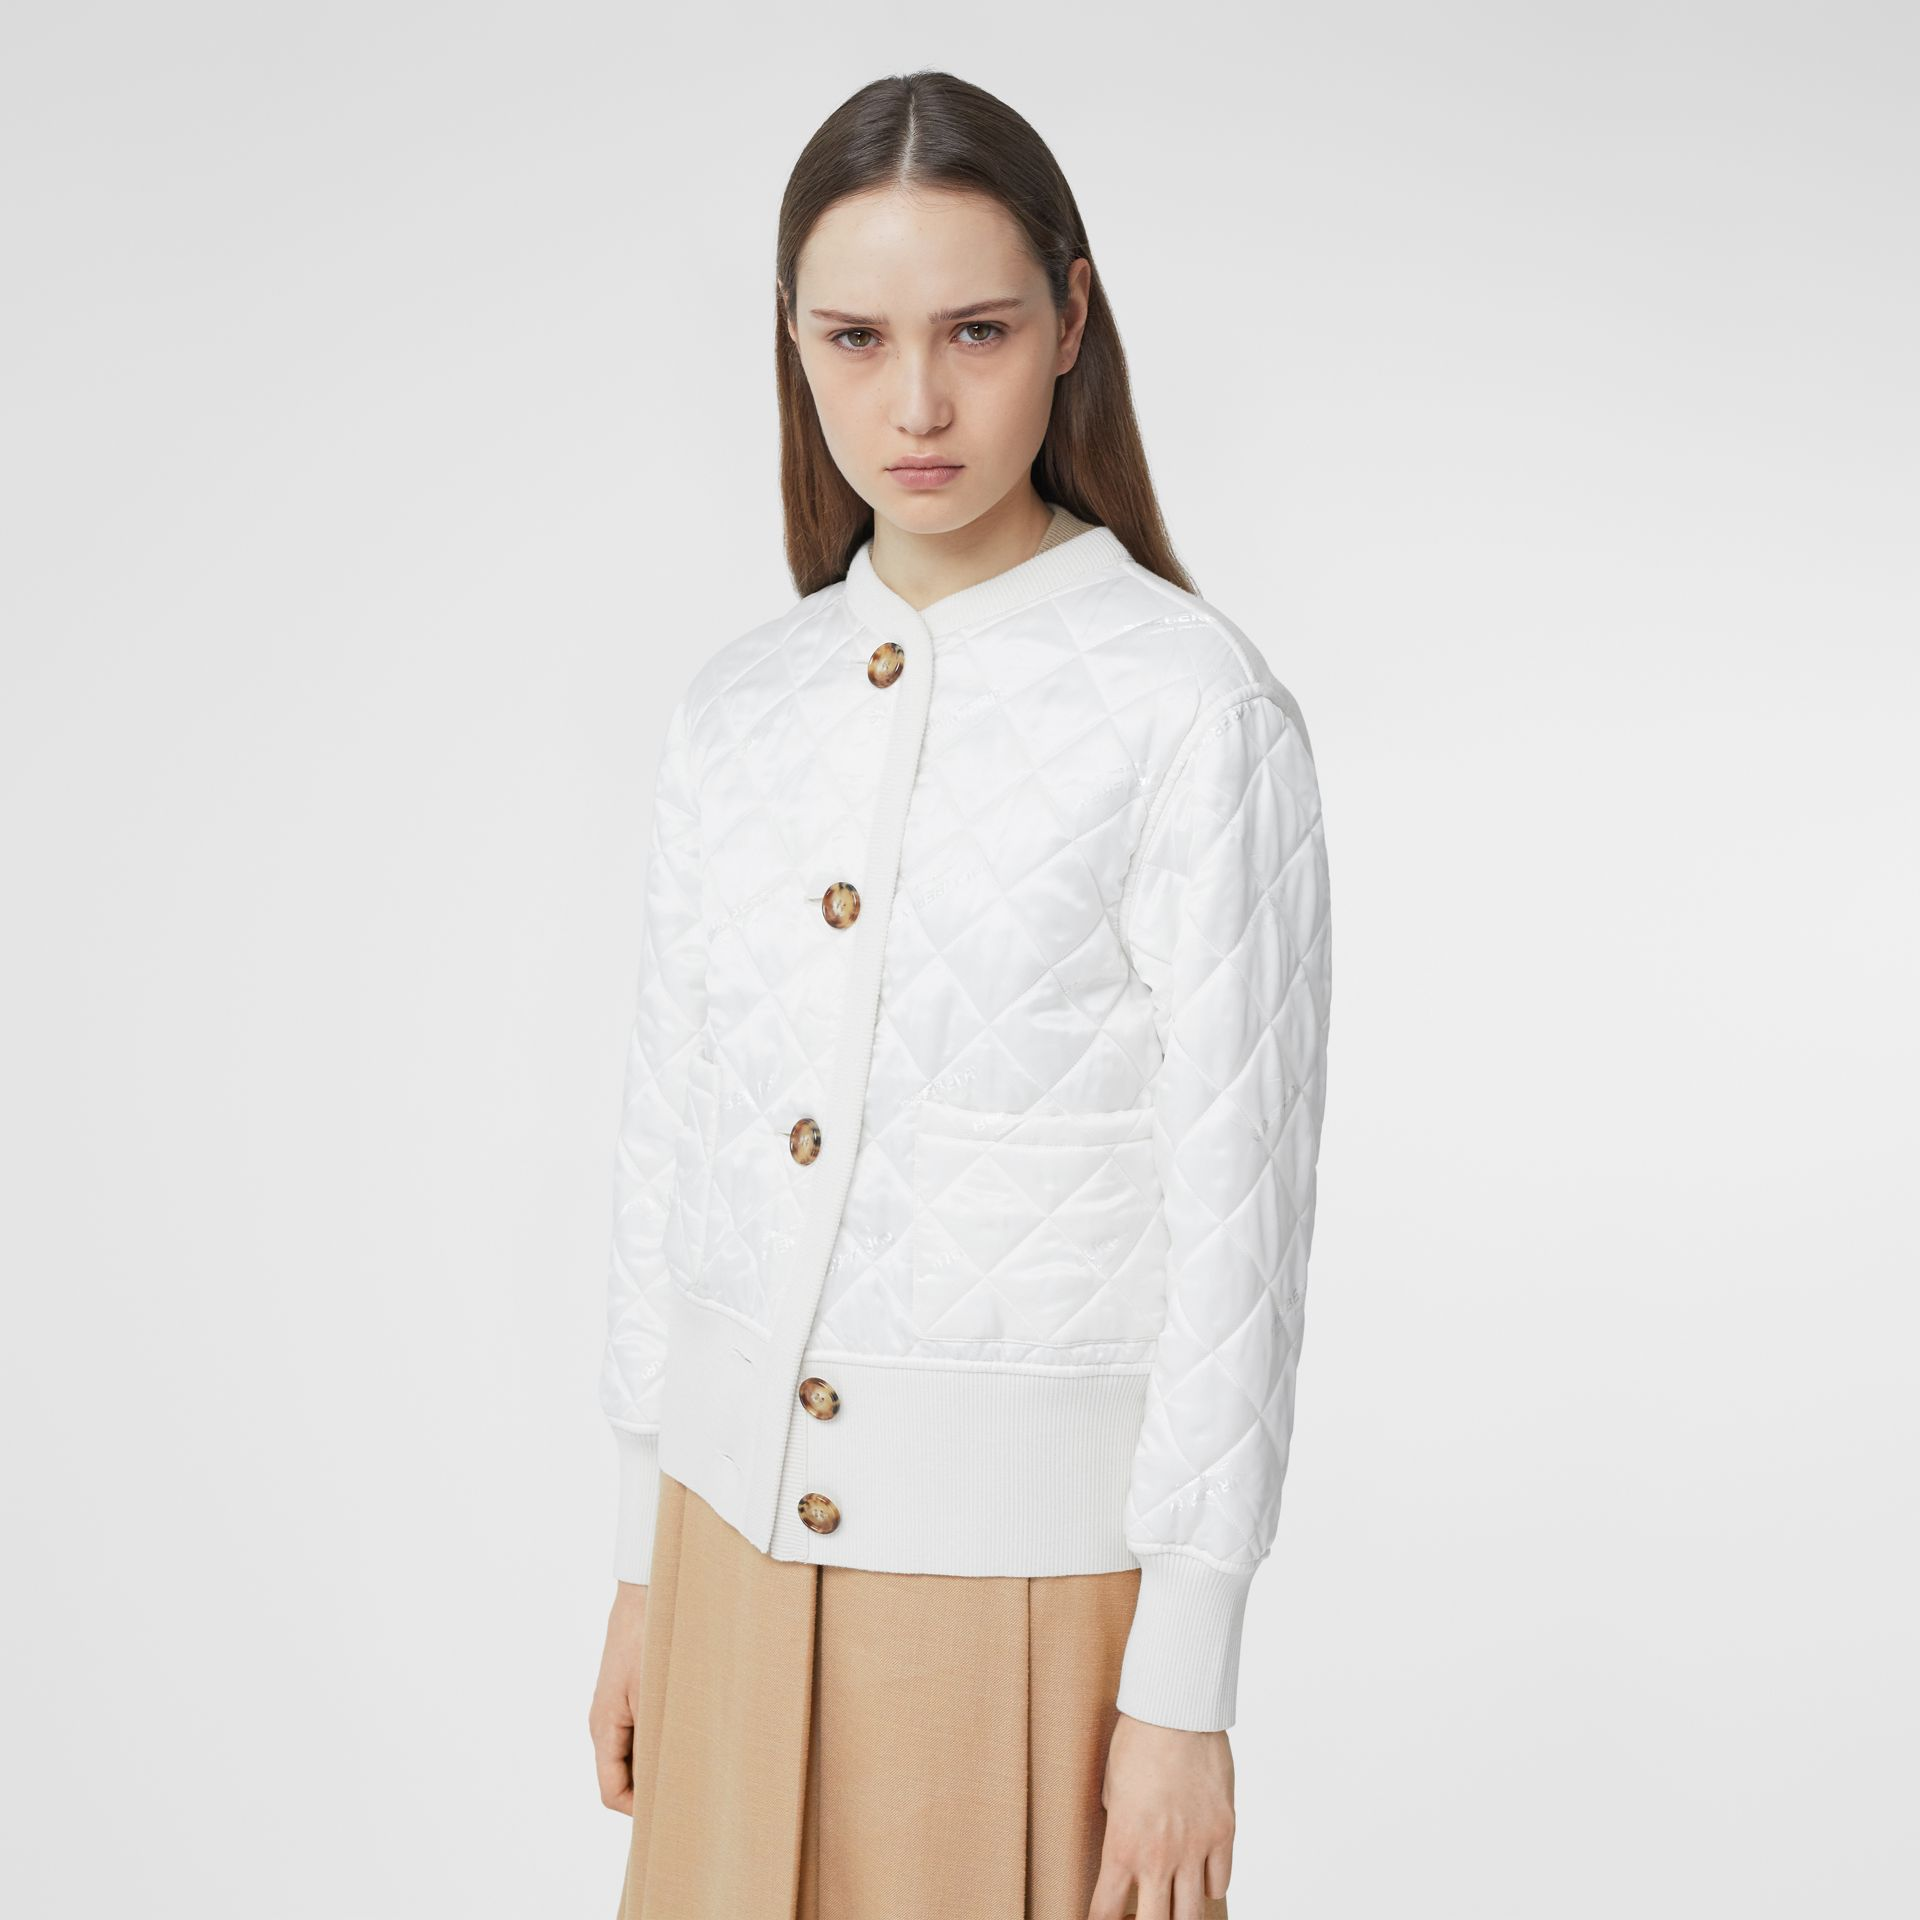 Logo Jacquard Diamond Quilted and Wool Blend Jacket in White - Women | Burberry - gallery image 5